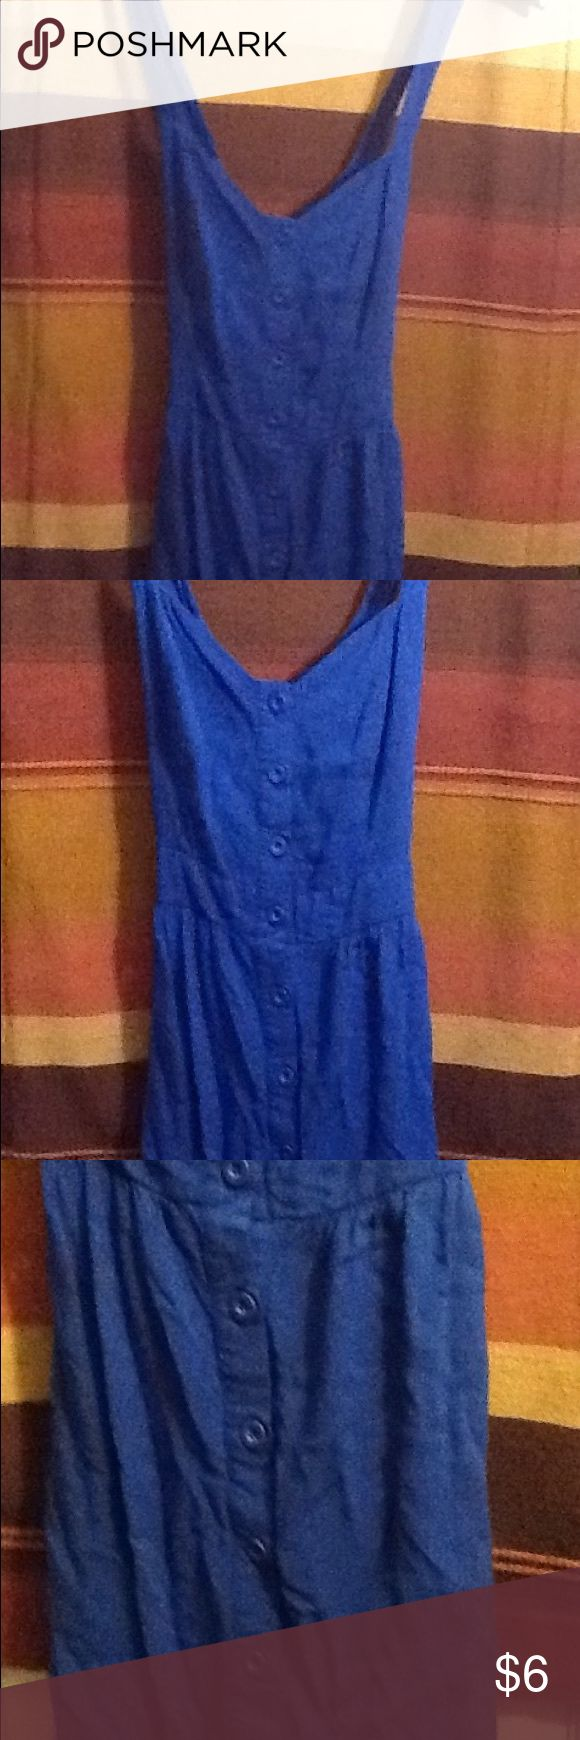 Junior women's dress This is a junior women's blue dress. It is a causal everyday summer dress. It is tank top style on top, crisscrosses in the back.(6). It buttons down the front. It has pockets on the sides. Dresses Mini